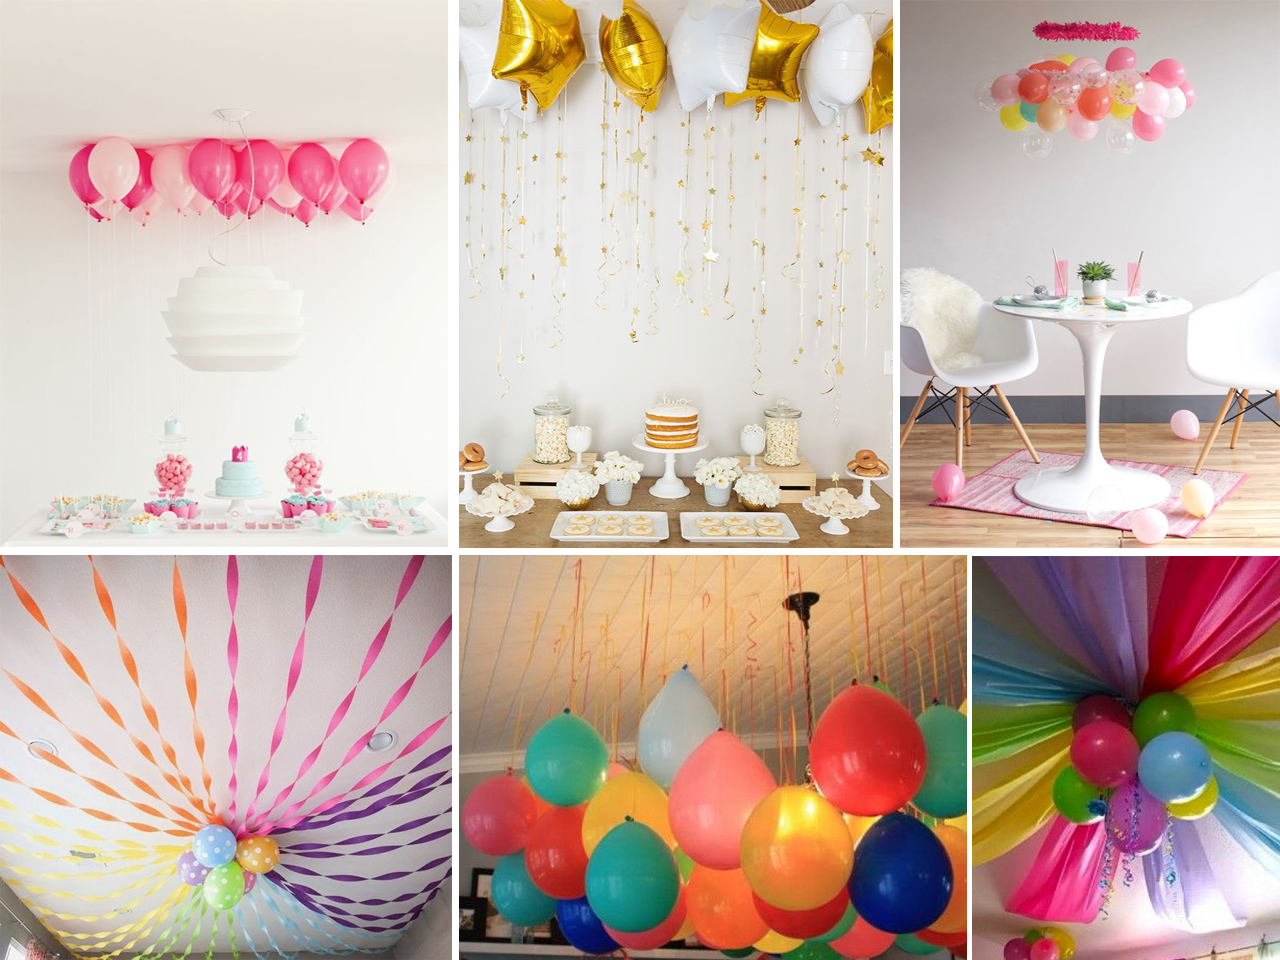 Descubre c mo decorar con globos con estas fant sticas ideas - Globos de decoracion ...